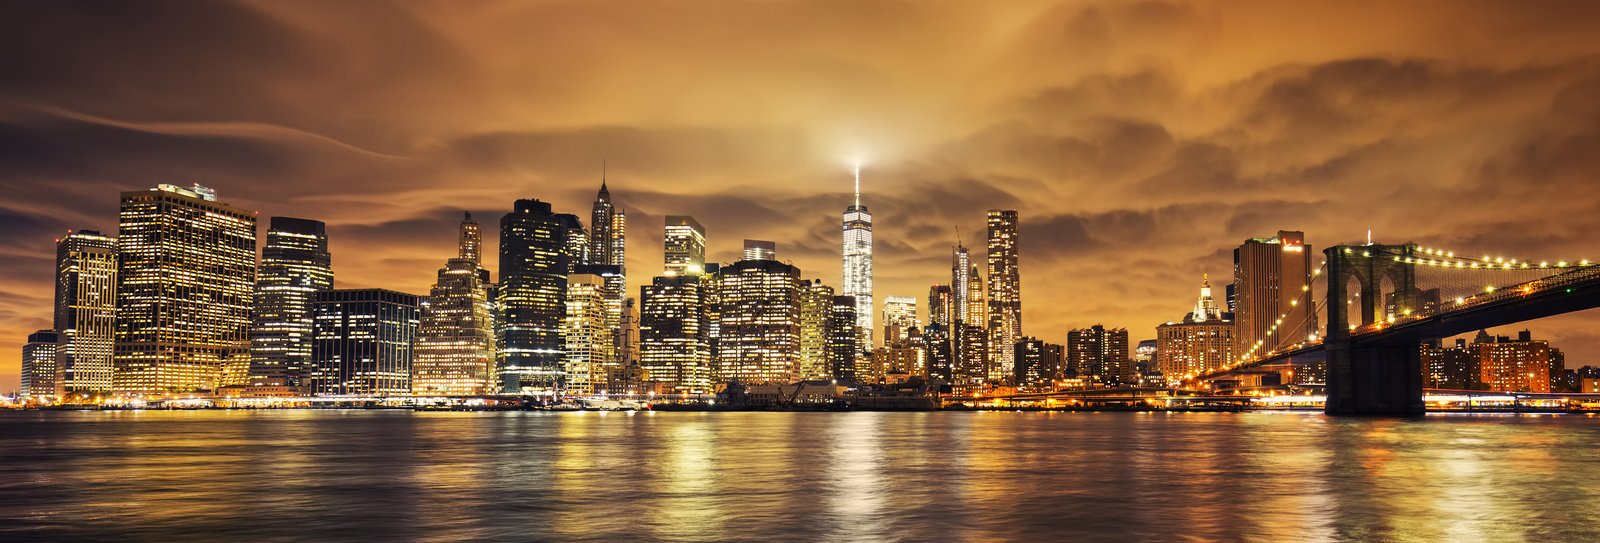 Little Australia Manhattan, NY Private Investigator